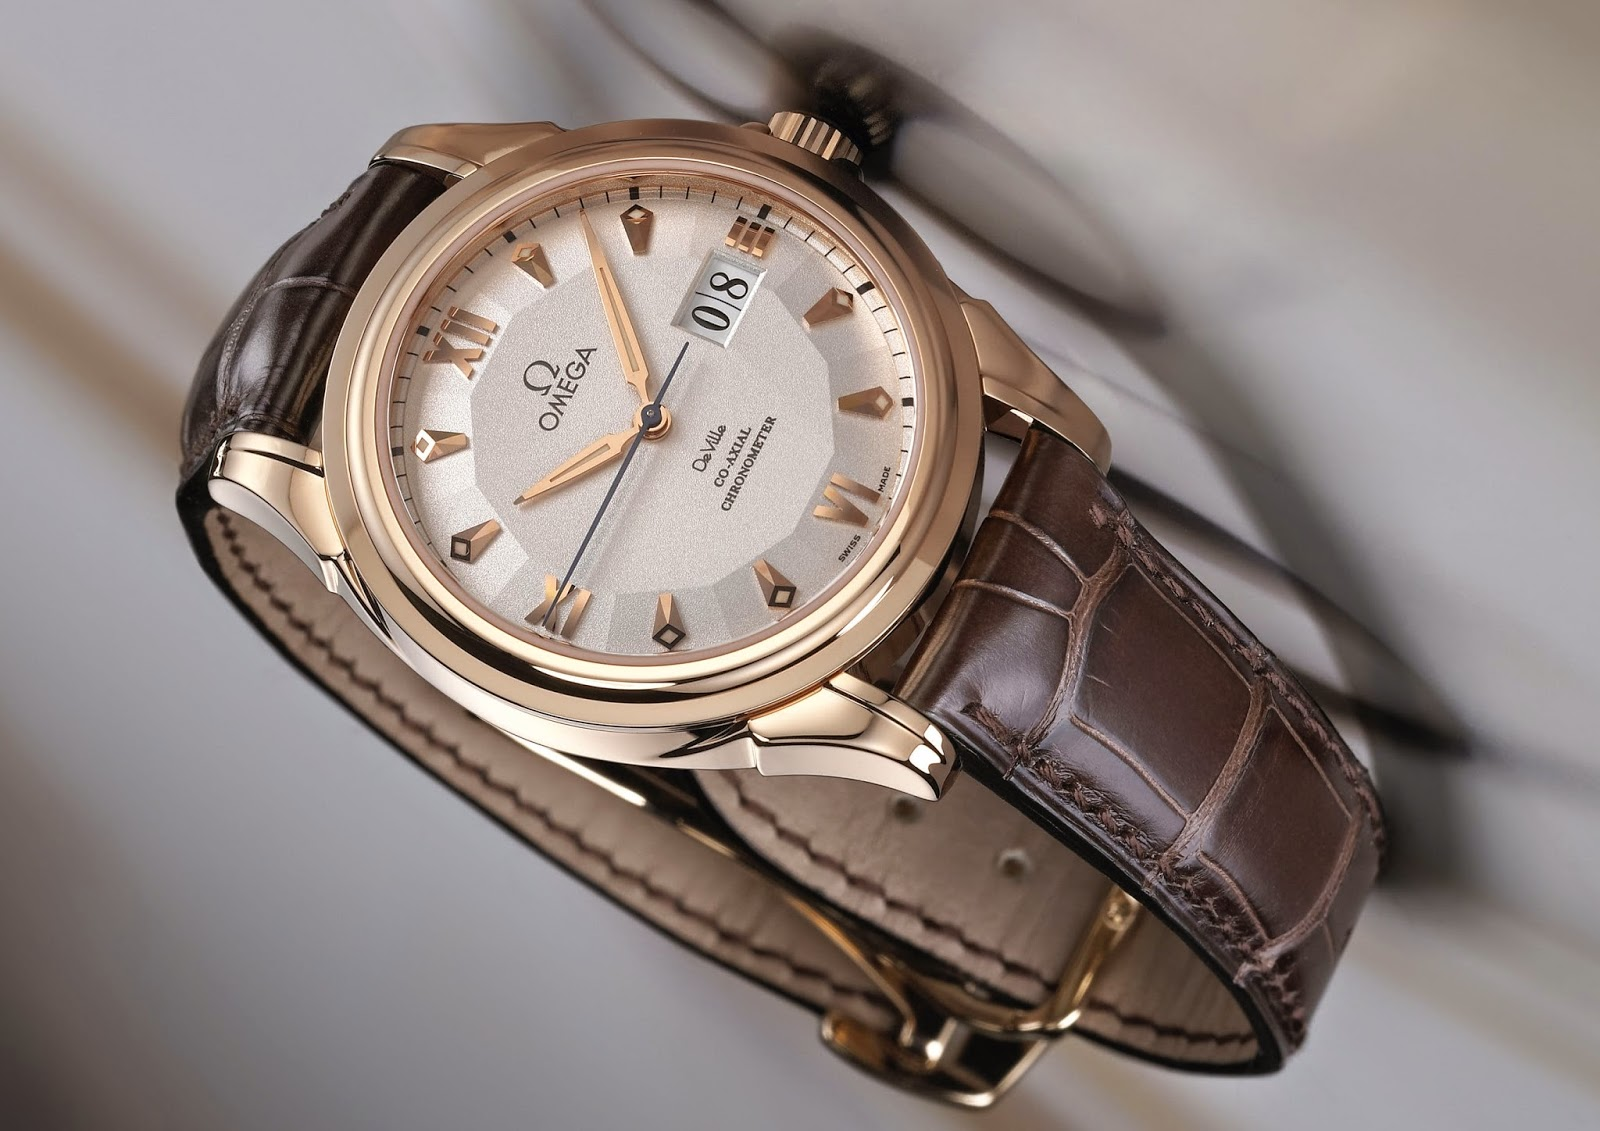 Omega - De Ville Co-Axial Big Date watch red gold case